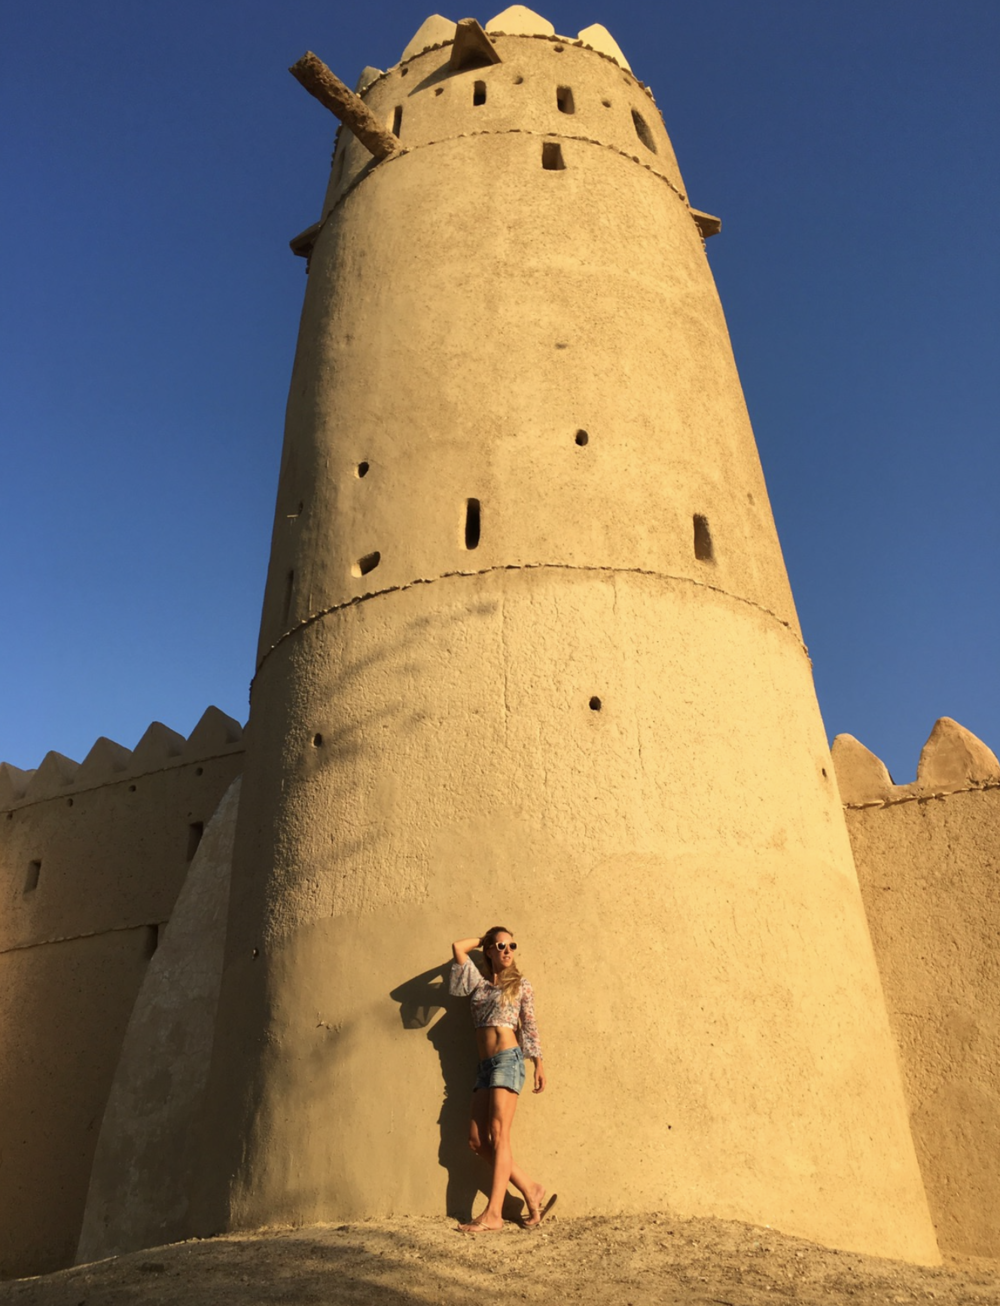 The forts of Al Ain are a popular tourist attraction